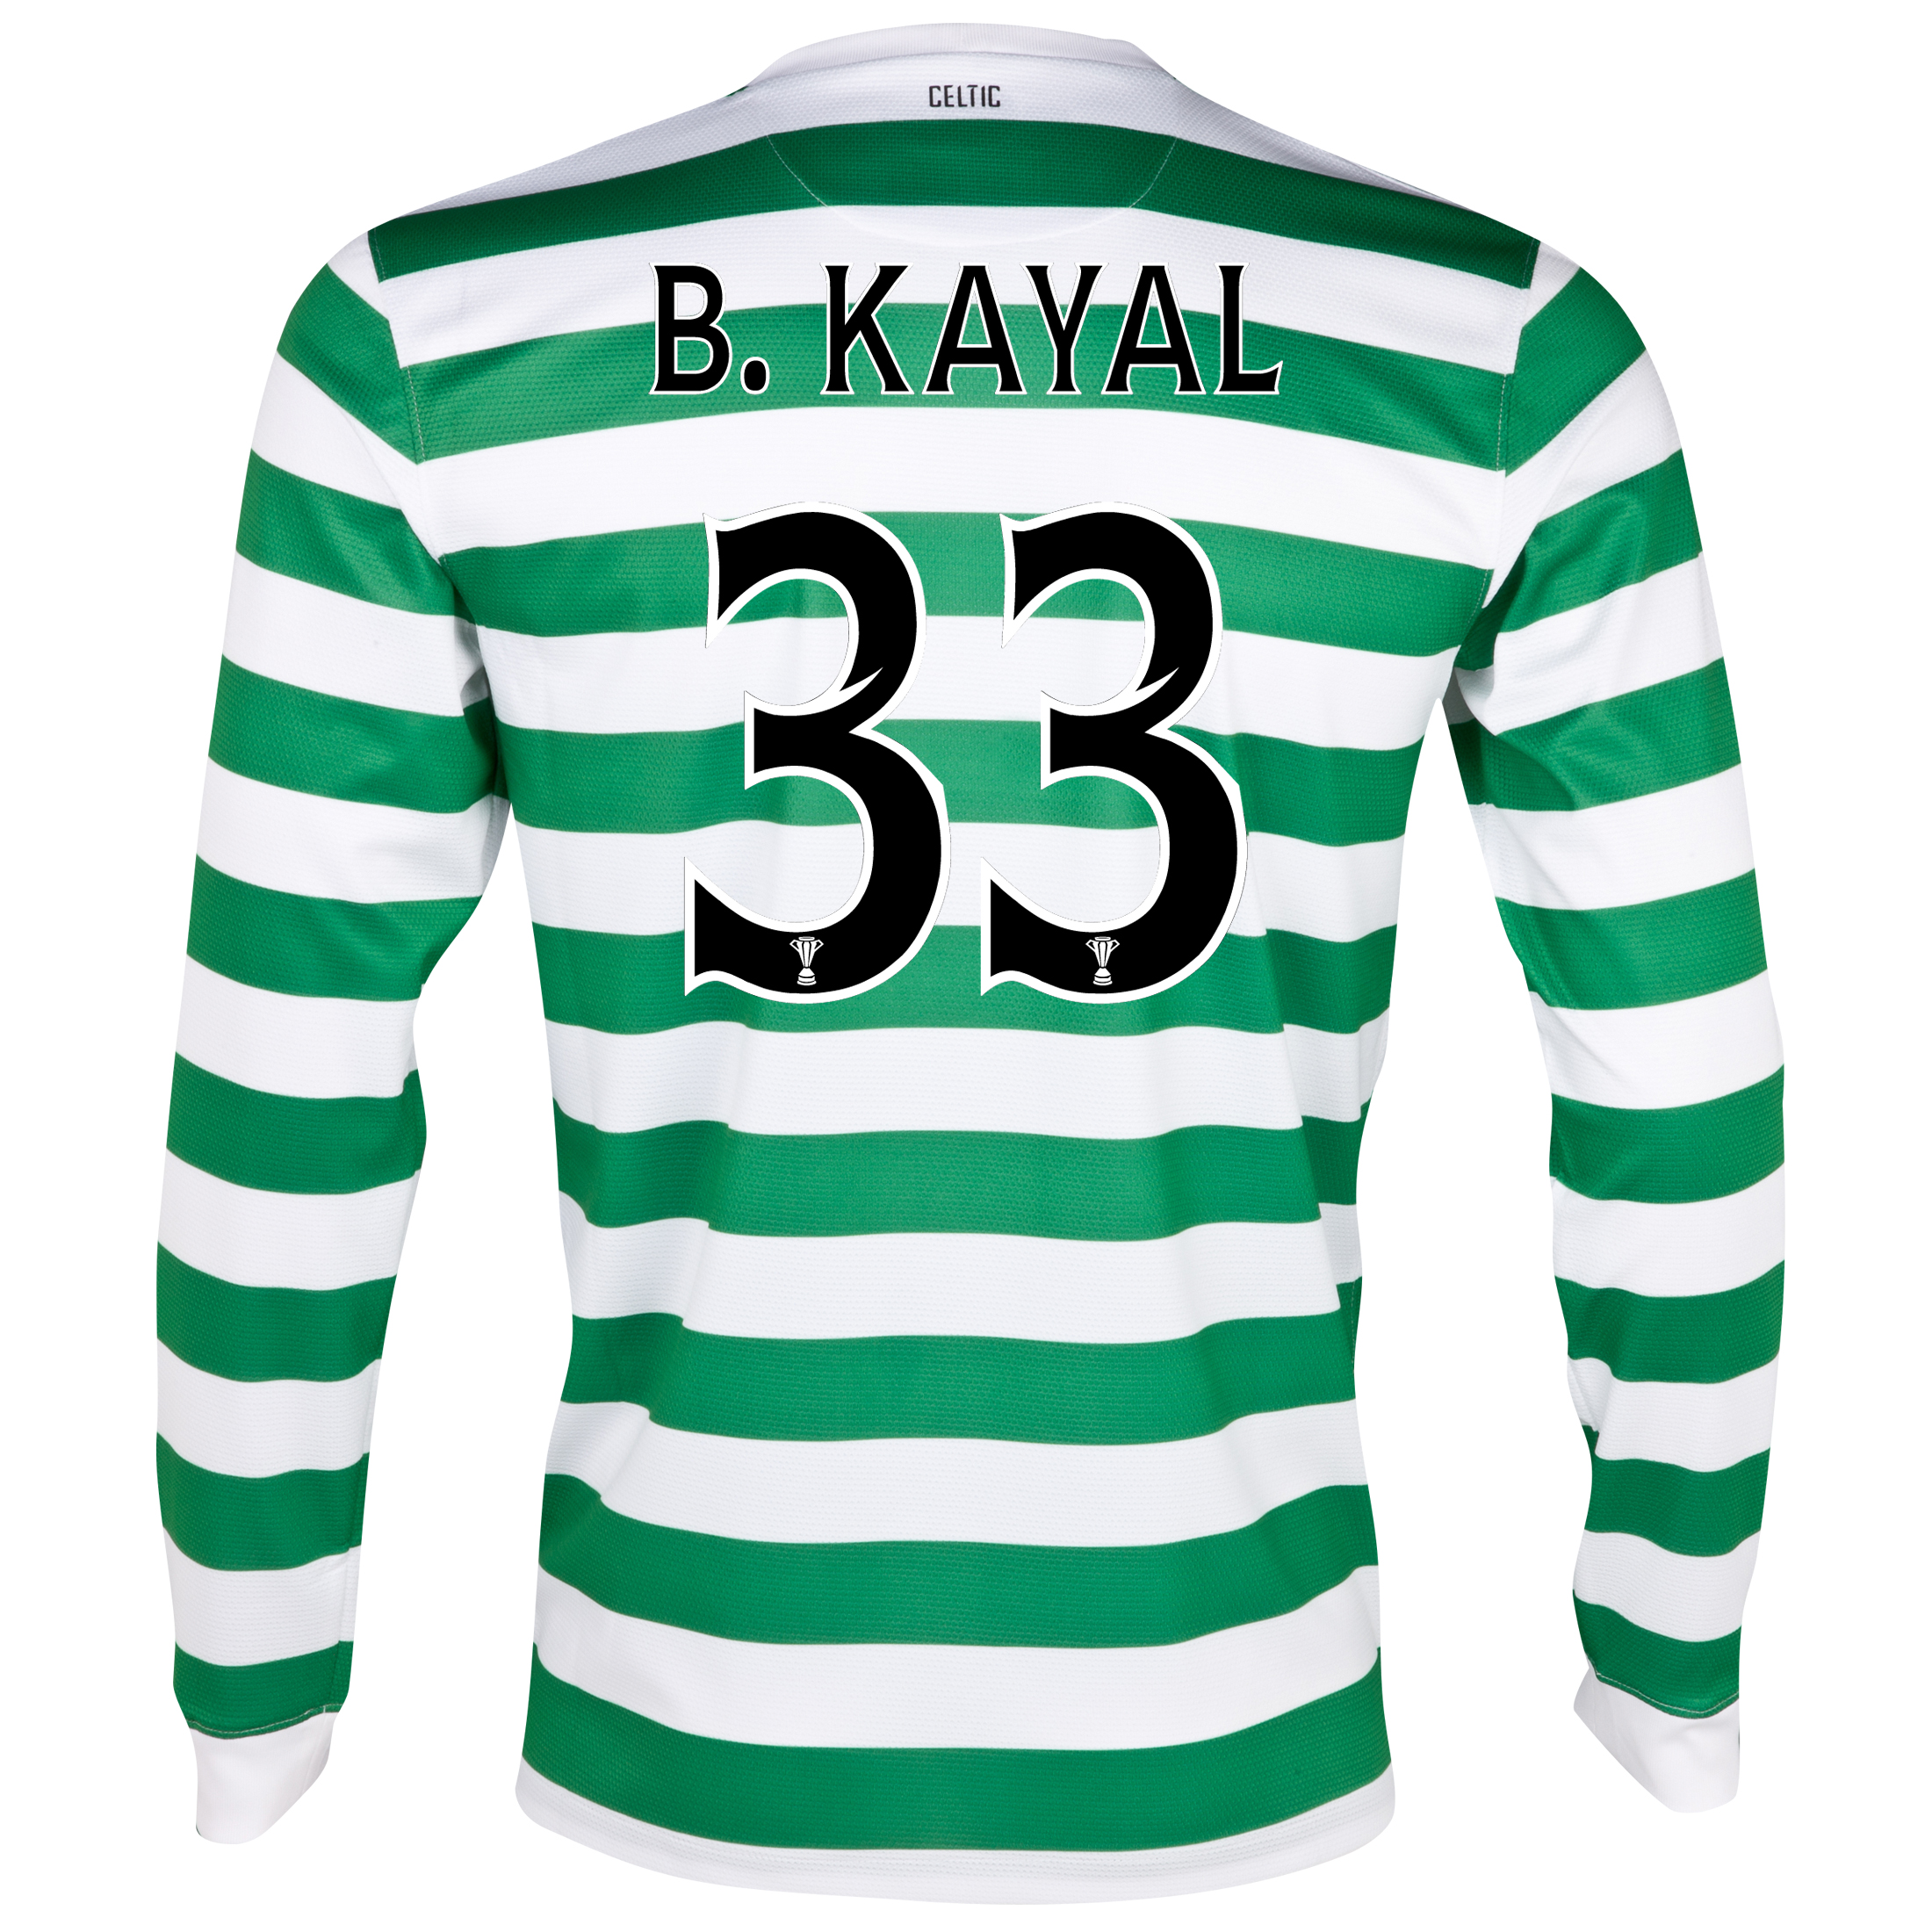 Celtic Home Shirt 2012/13 - Long Sleeved with B.Kayal 33 printing